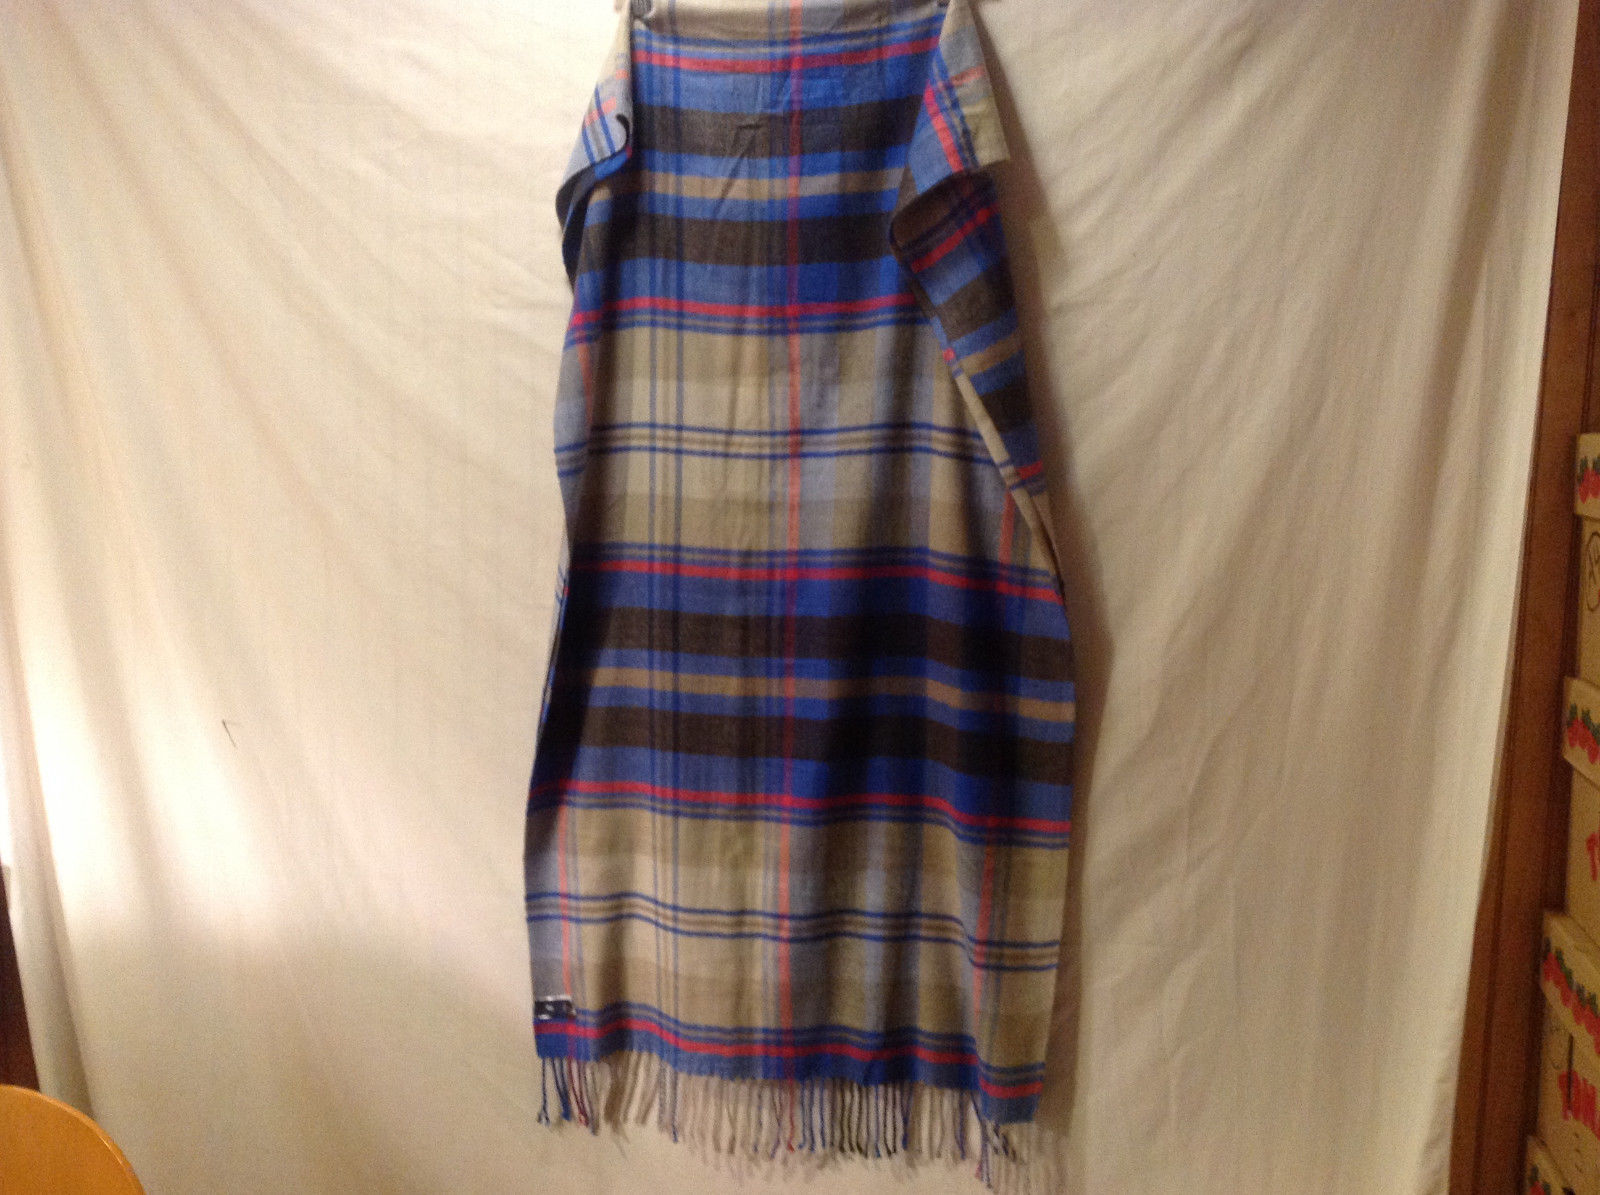 GAP Women's Shawl Scarf Stole Wrap in Pink Blue Beige Plaid Weave w/ Fringe Trim